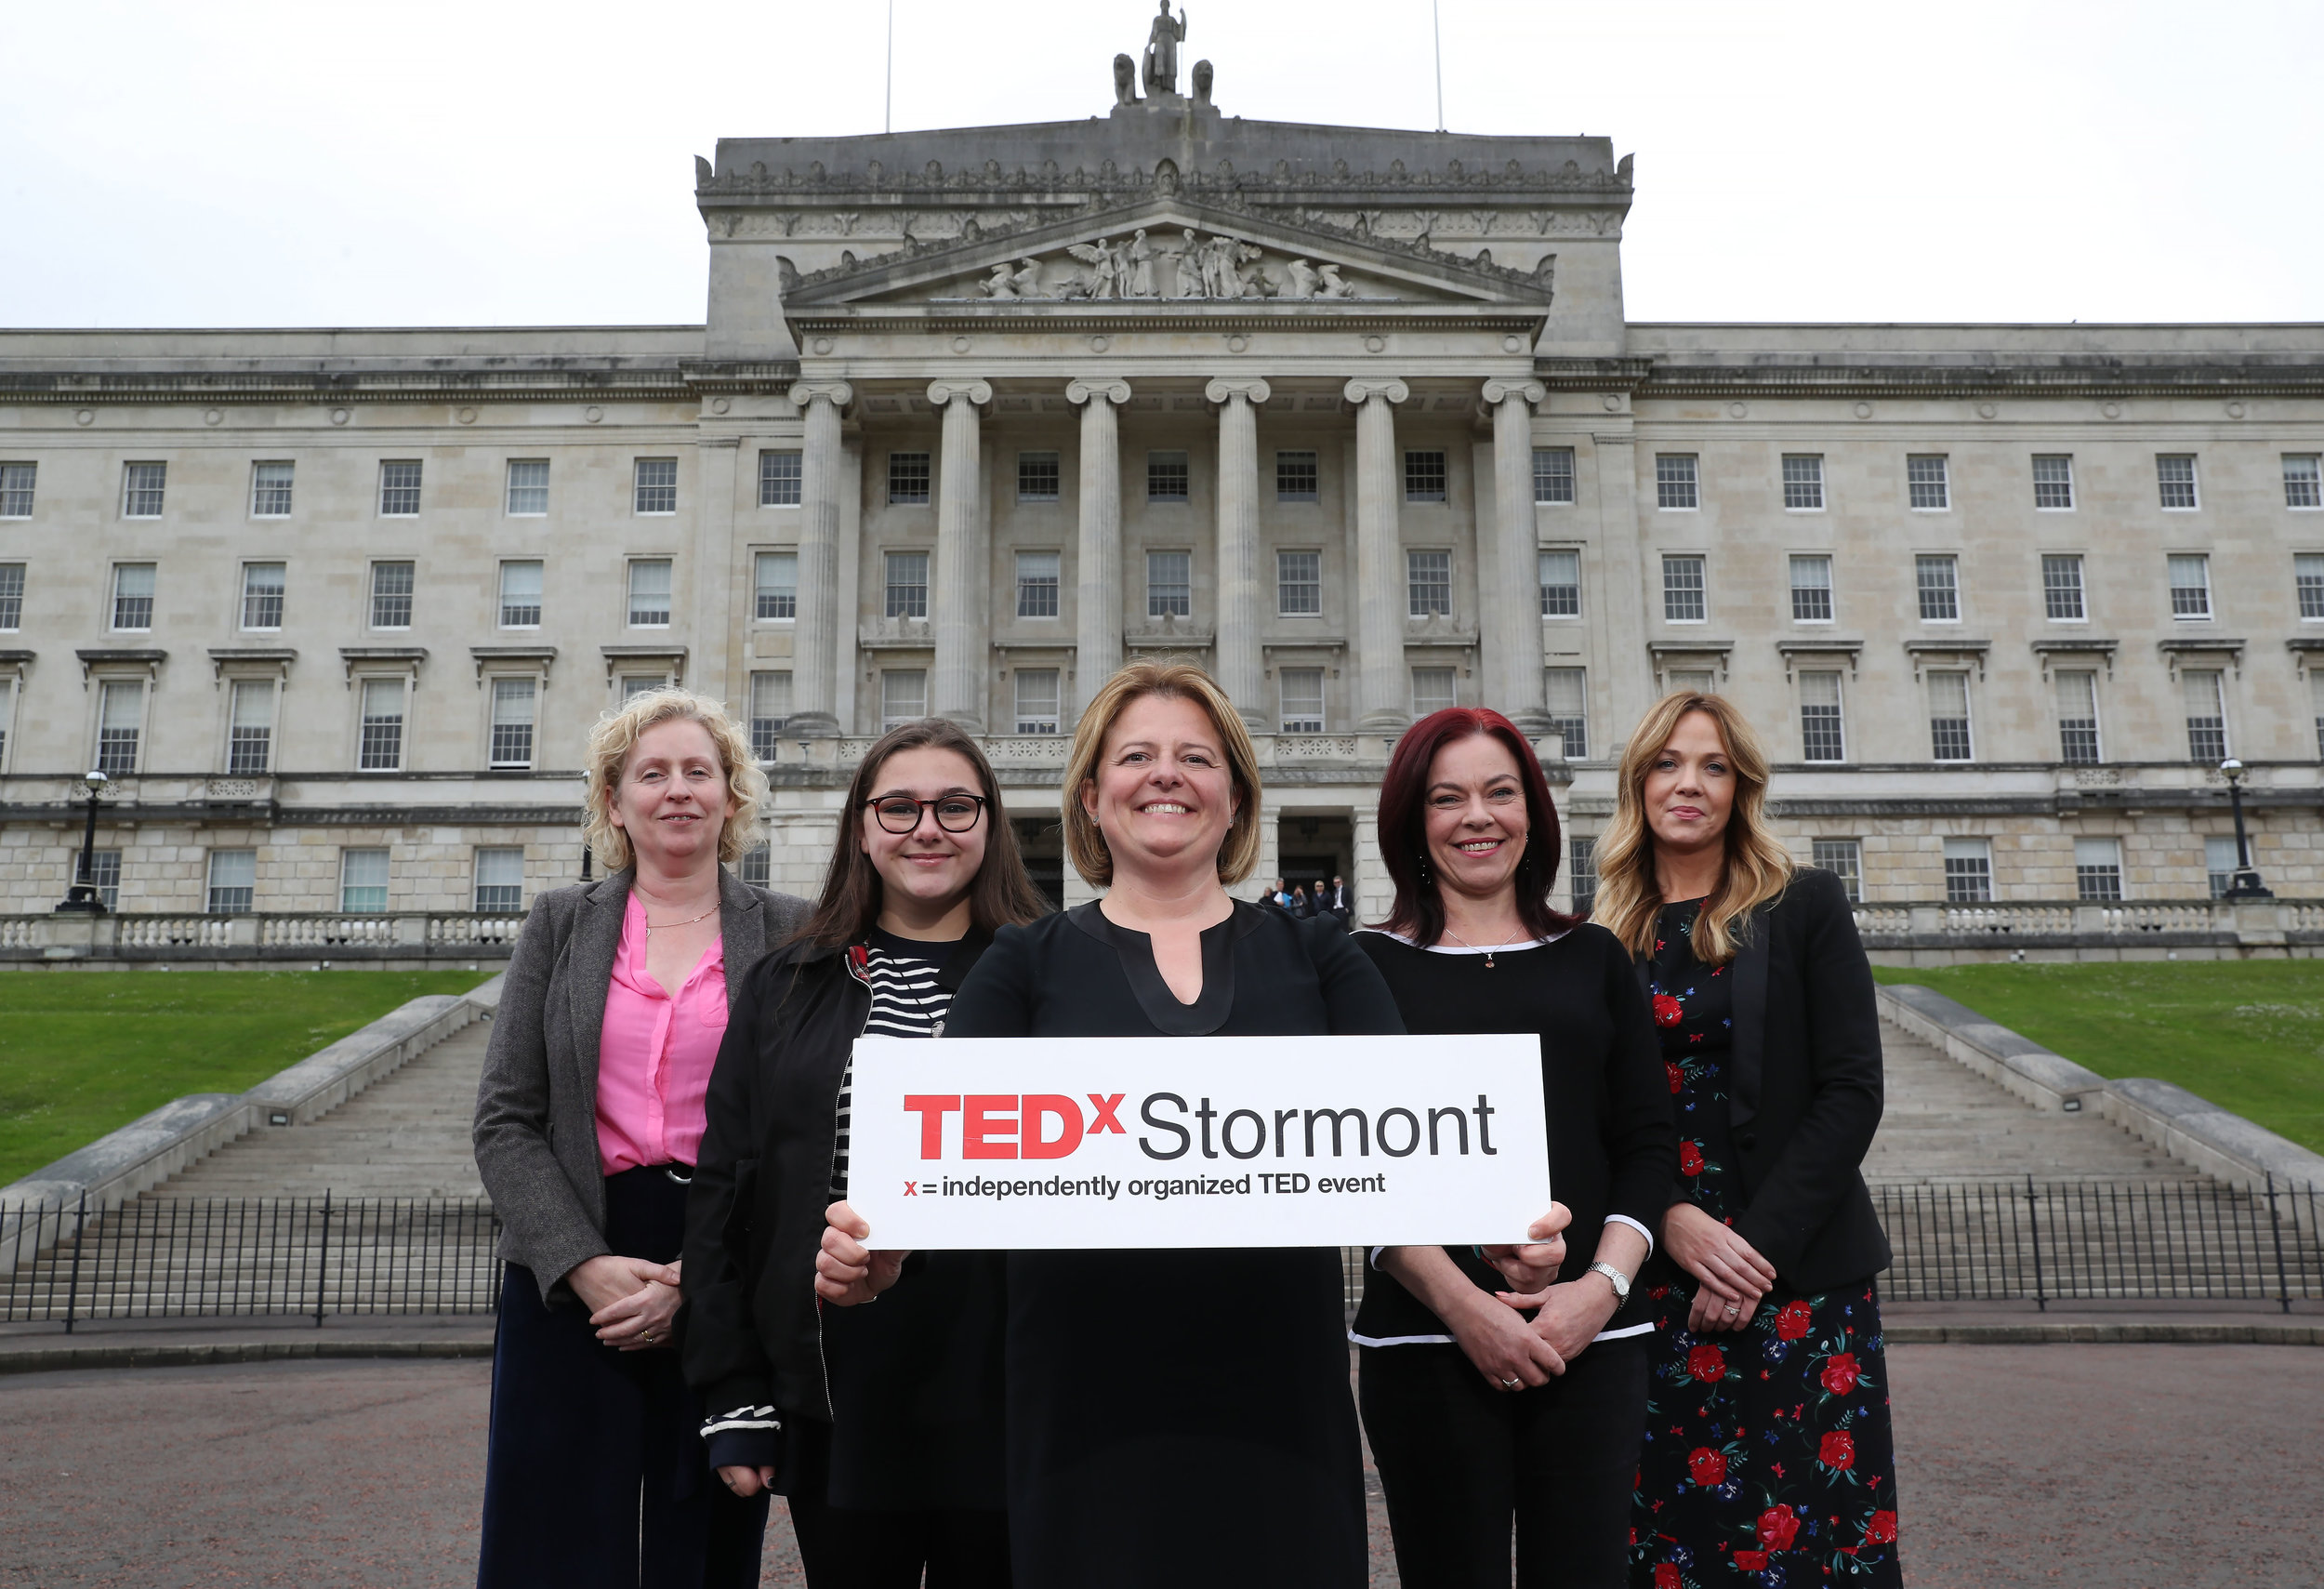 Talk like TED Pic 1:  (From left to Right): Siobhan Broderick, Urban Villages Initiative, Beth Vance, Urban Villages Participant, Eva Grosman, TEDxStormont Curator, Clare Bailey, MLA, Selina Wallace, Smarts